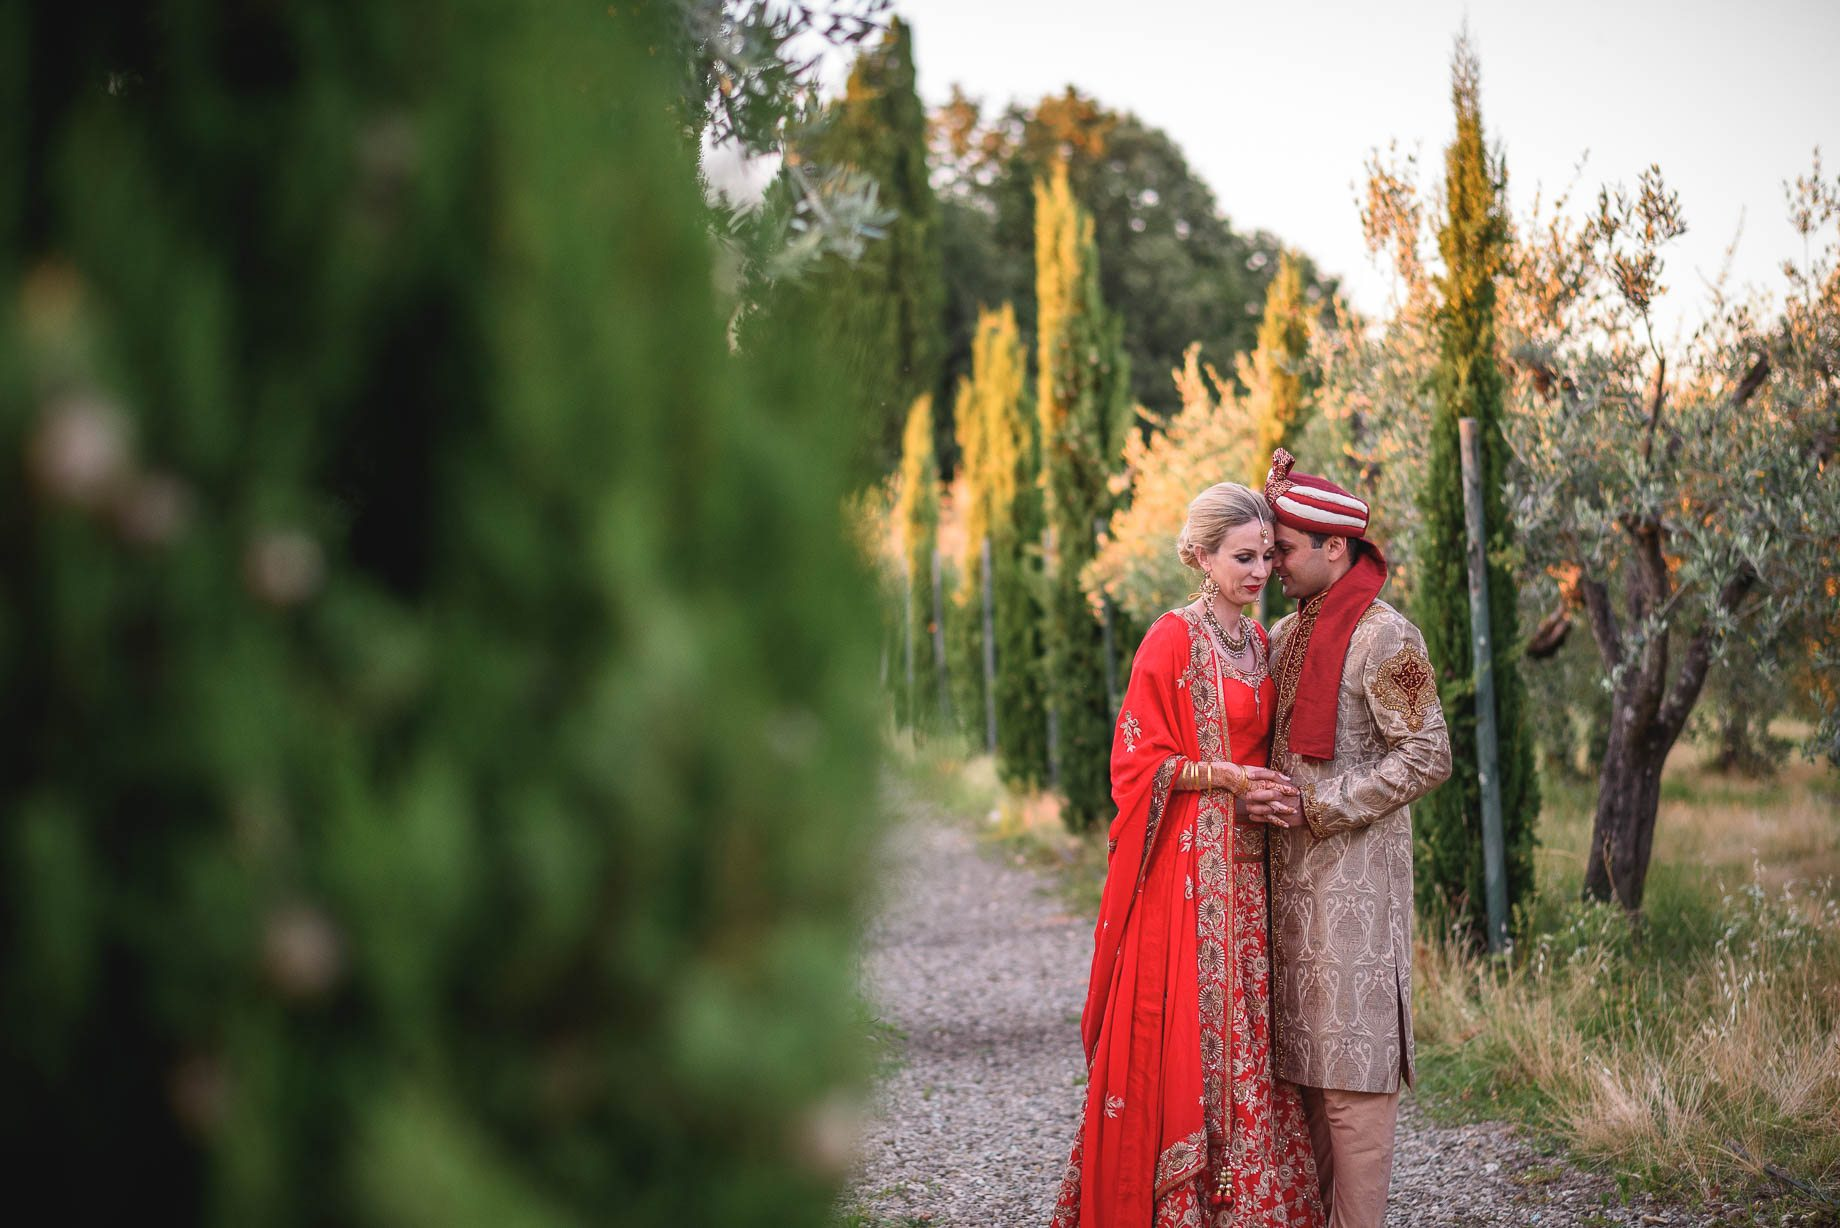 Tuscany wedding photography - Roisin and Moubin - Guy Collier Photography (164 of 194)